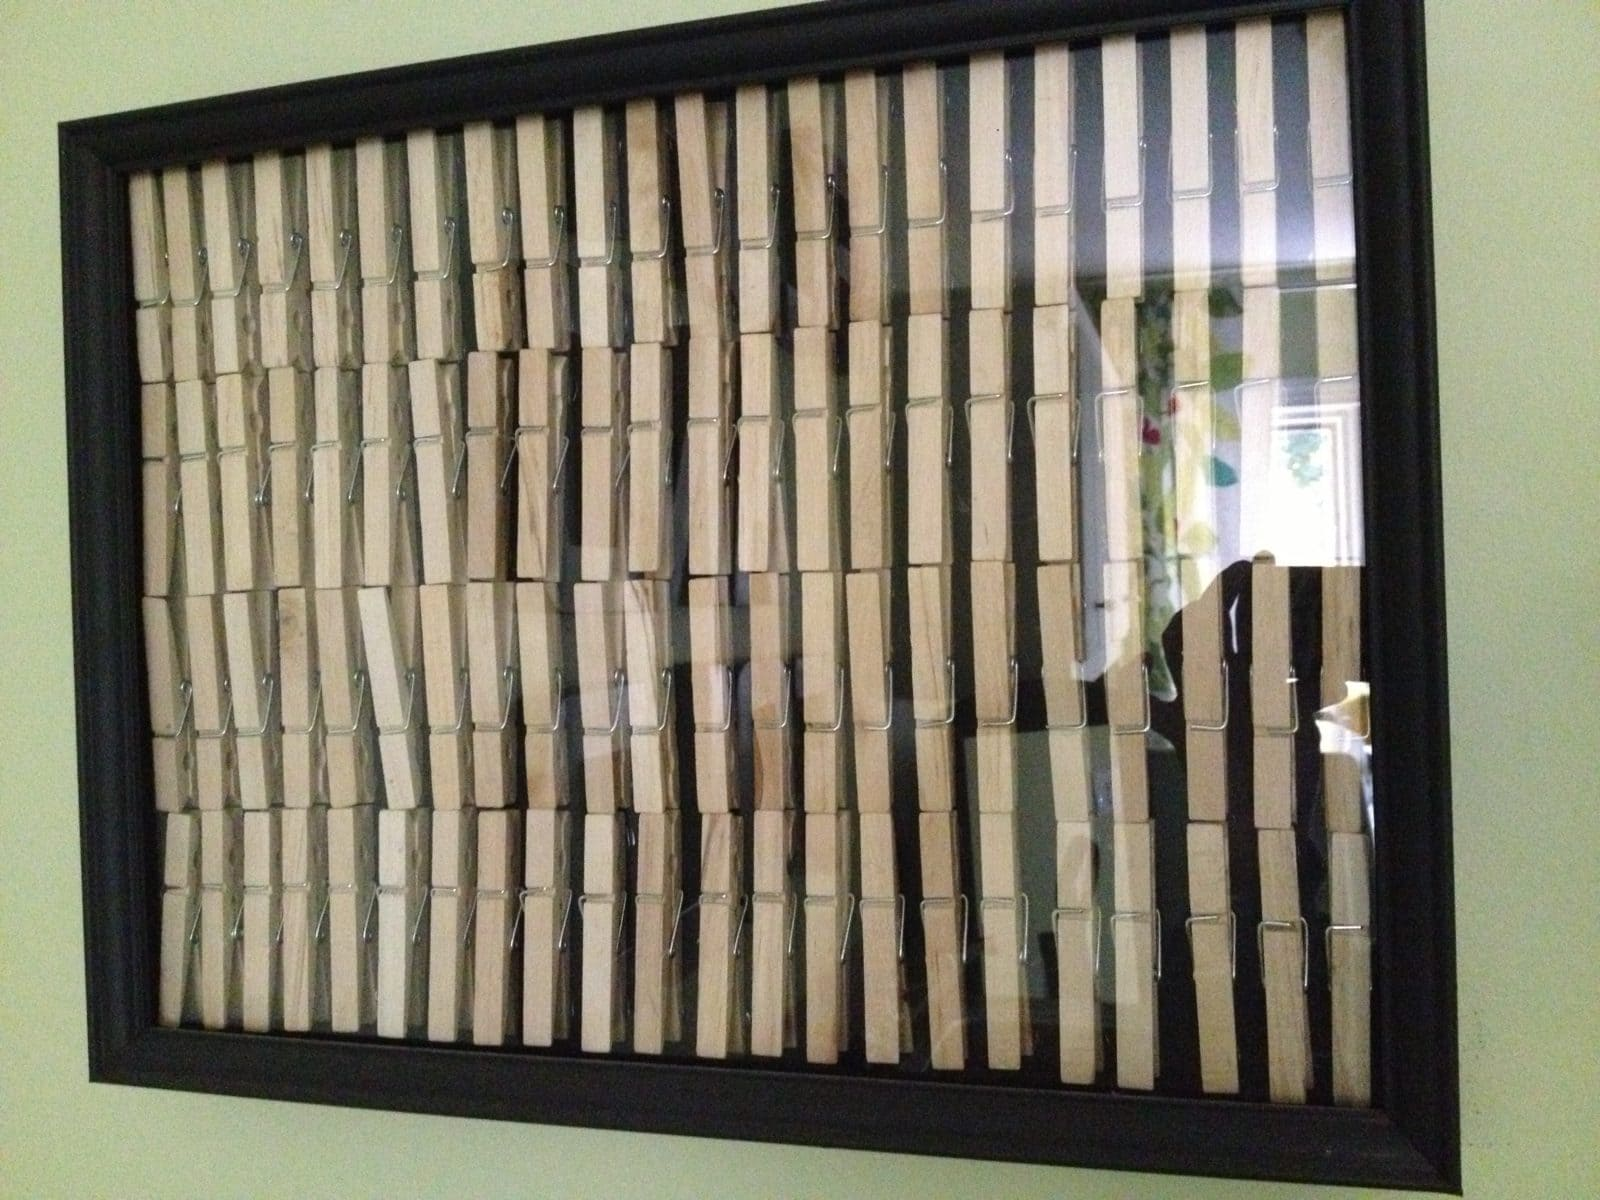 Diy picture frame no sawing or cutting required thrifty easy diy laundry room art tutorial jeuxipadfo Images